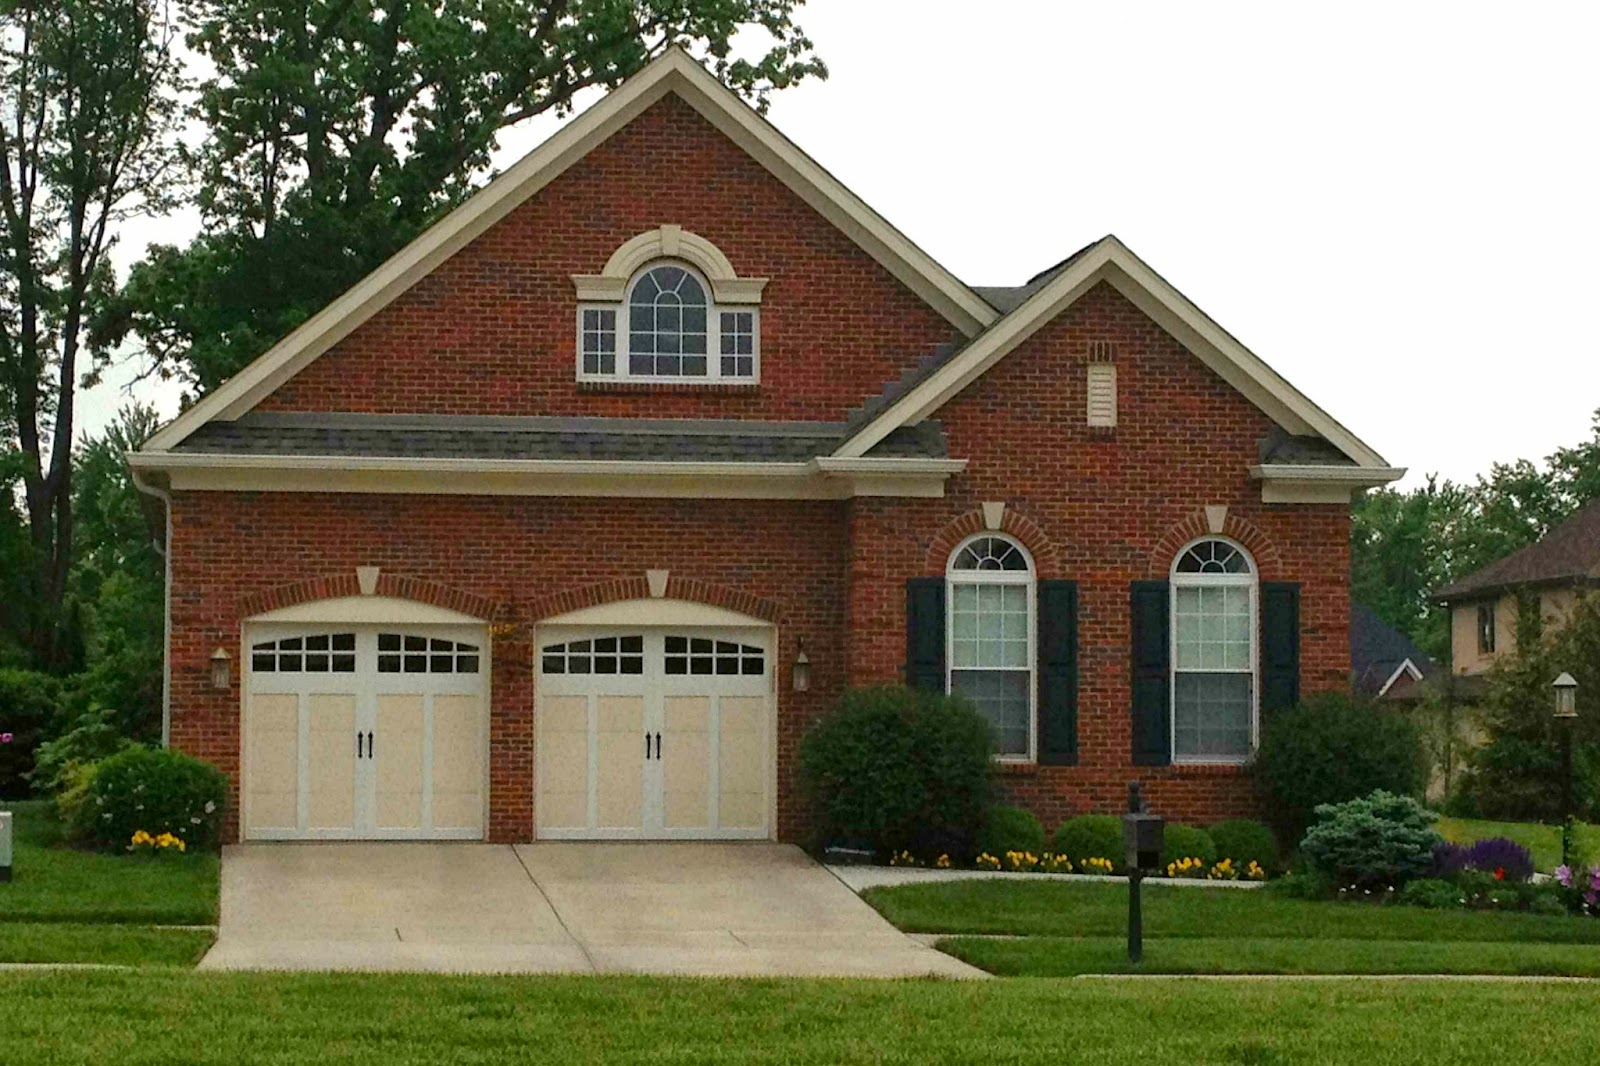 Brown Garage Doors With Windows garage door replacement: 10 tips for making the right choice